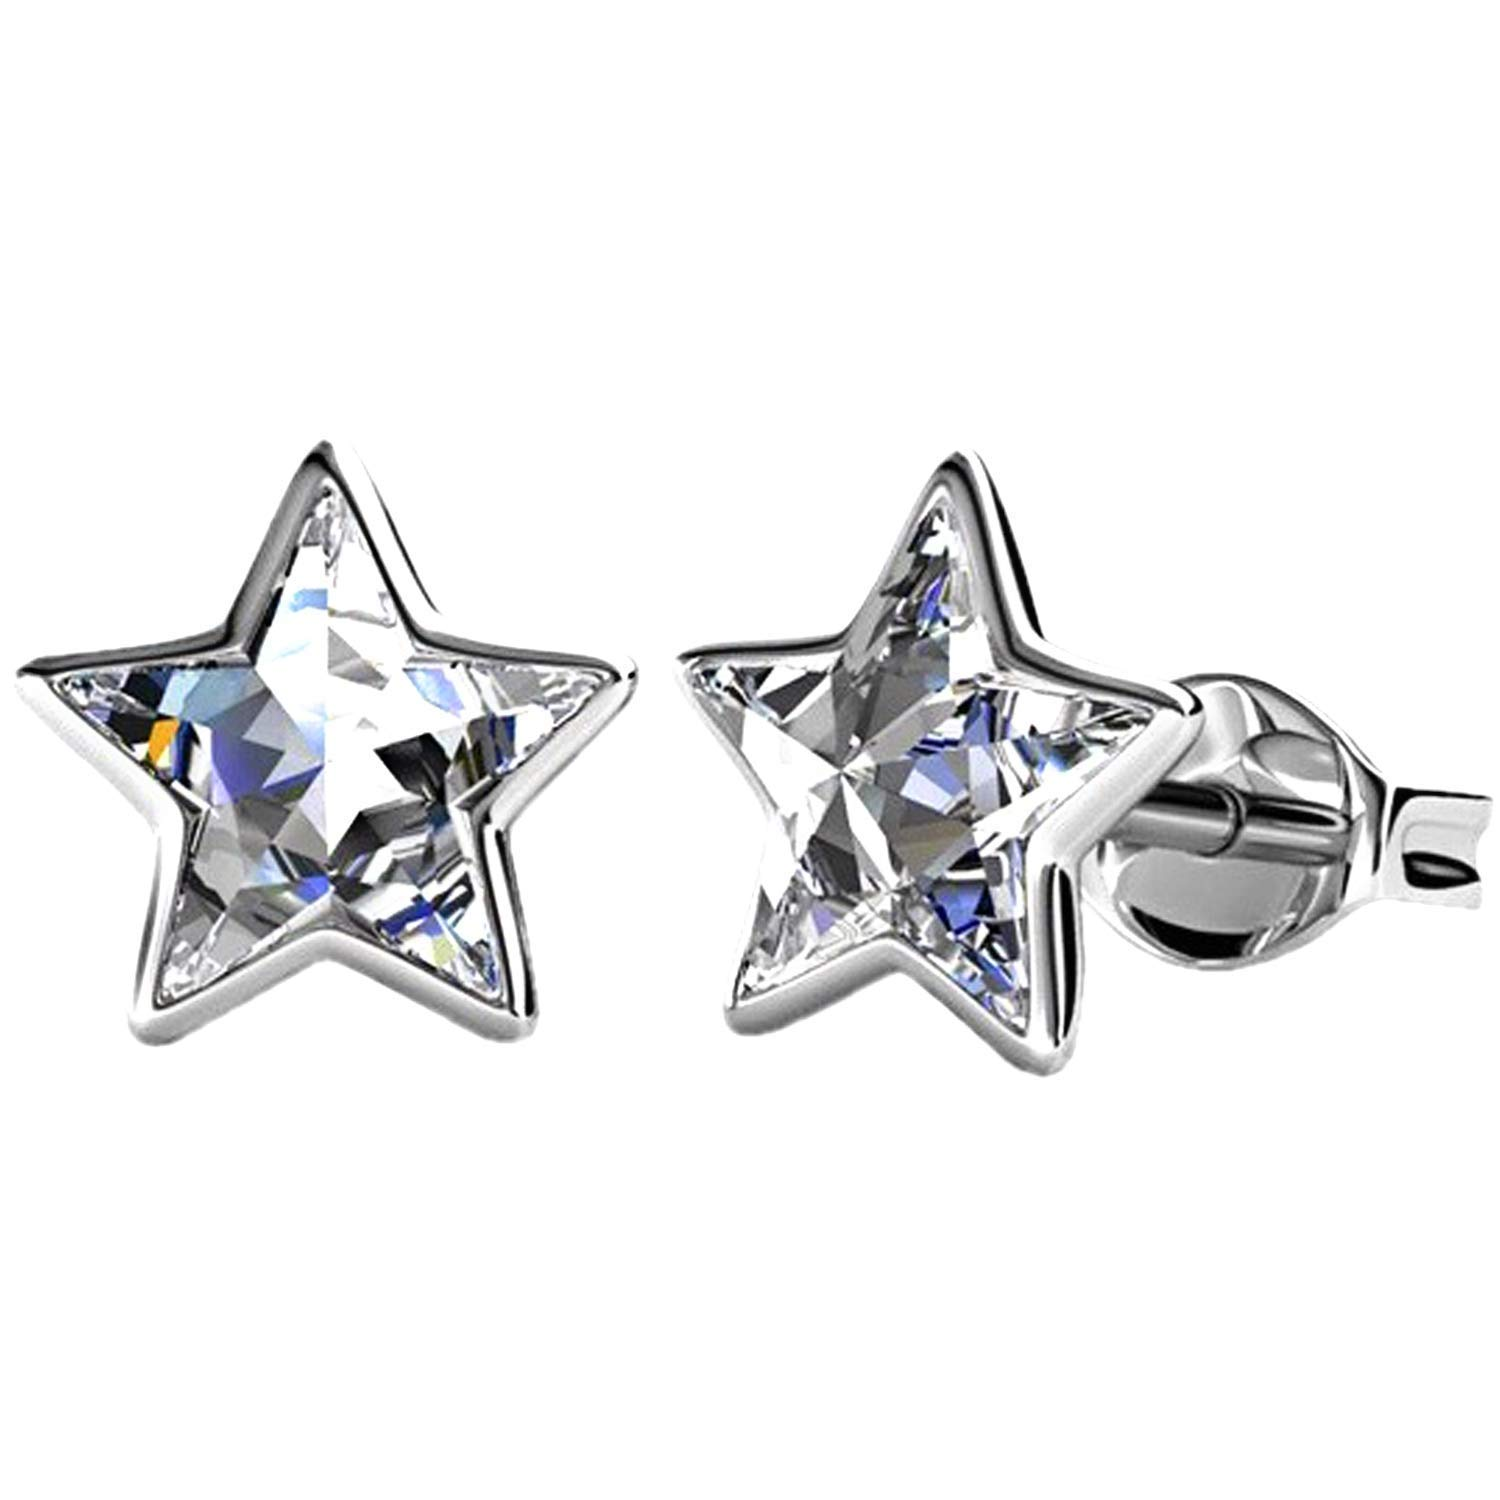 c4c69c33cc605 Silver Star Small Stud Swarovski Crystal Earrings - Rhodium plated for  Women's or Girl's Gift